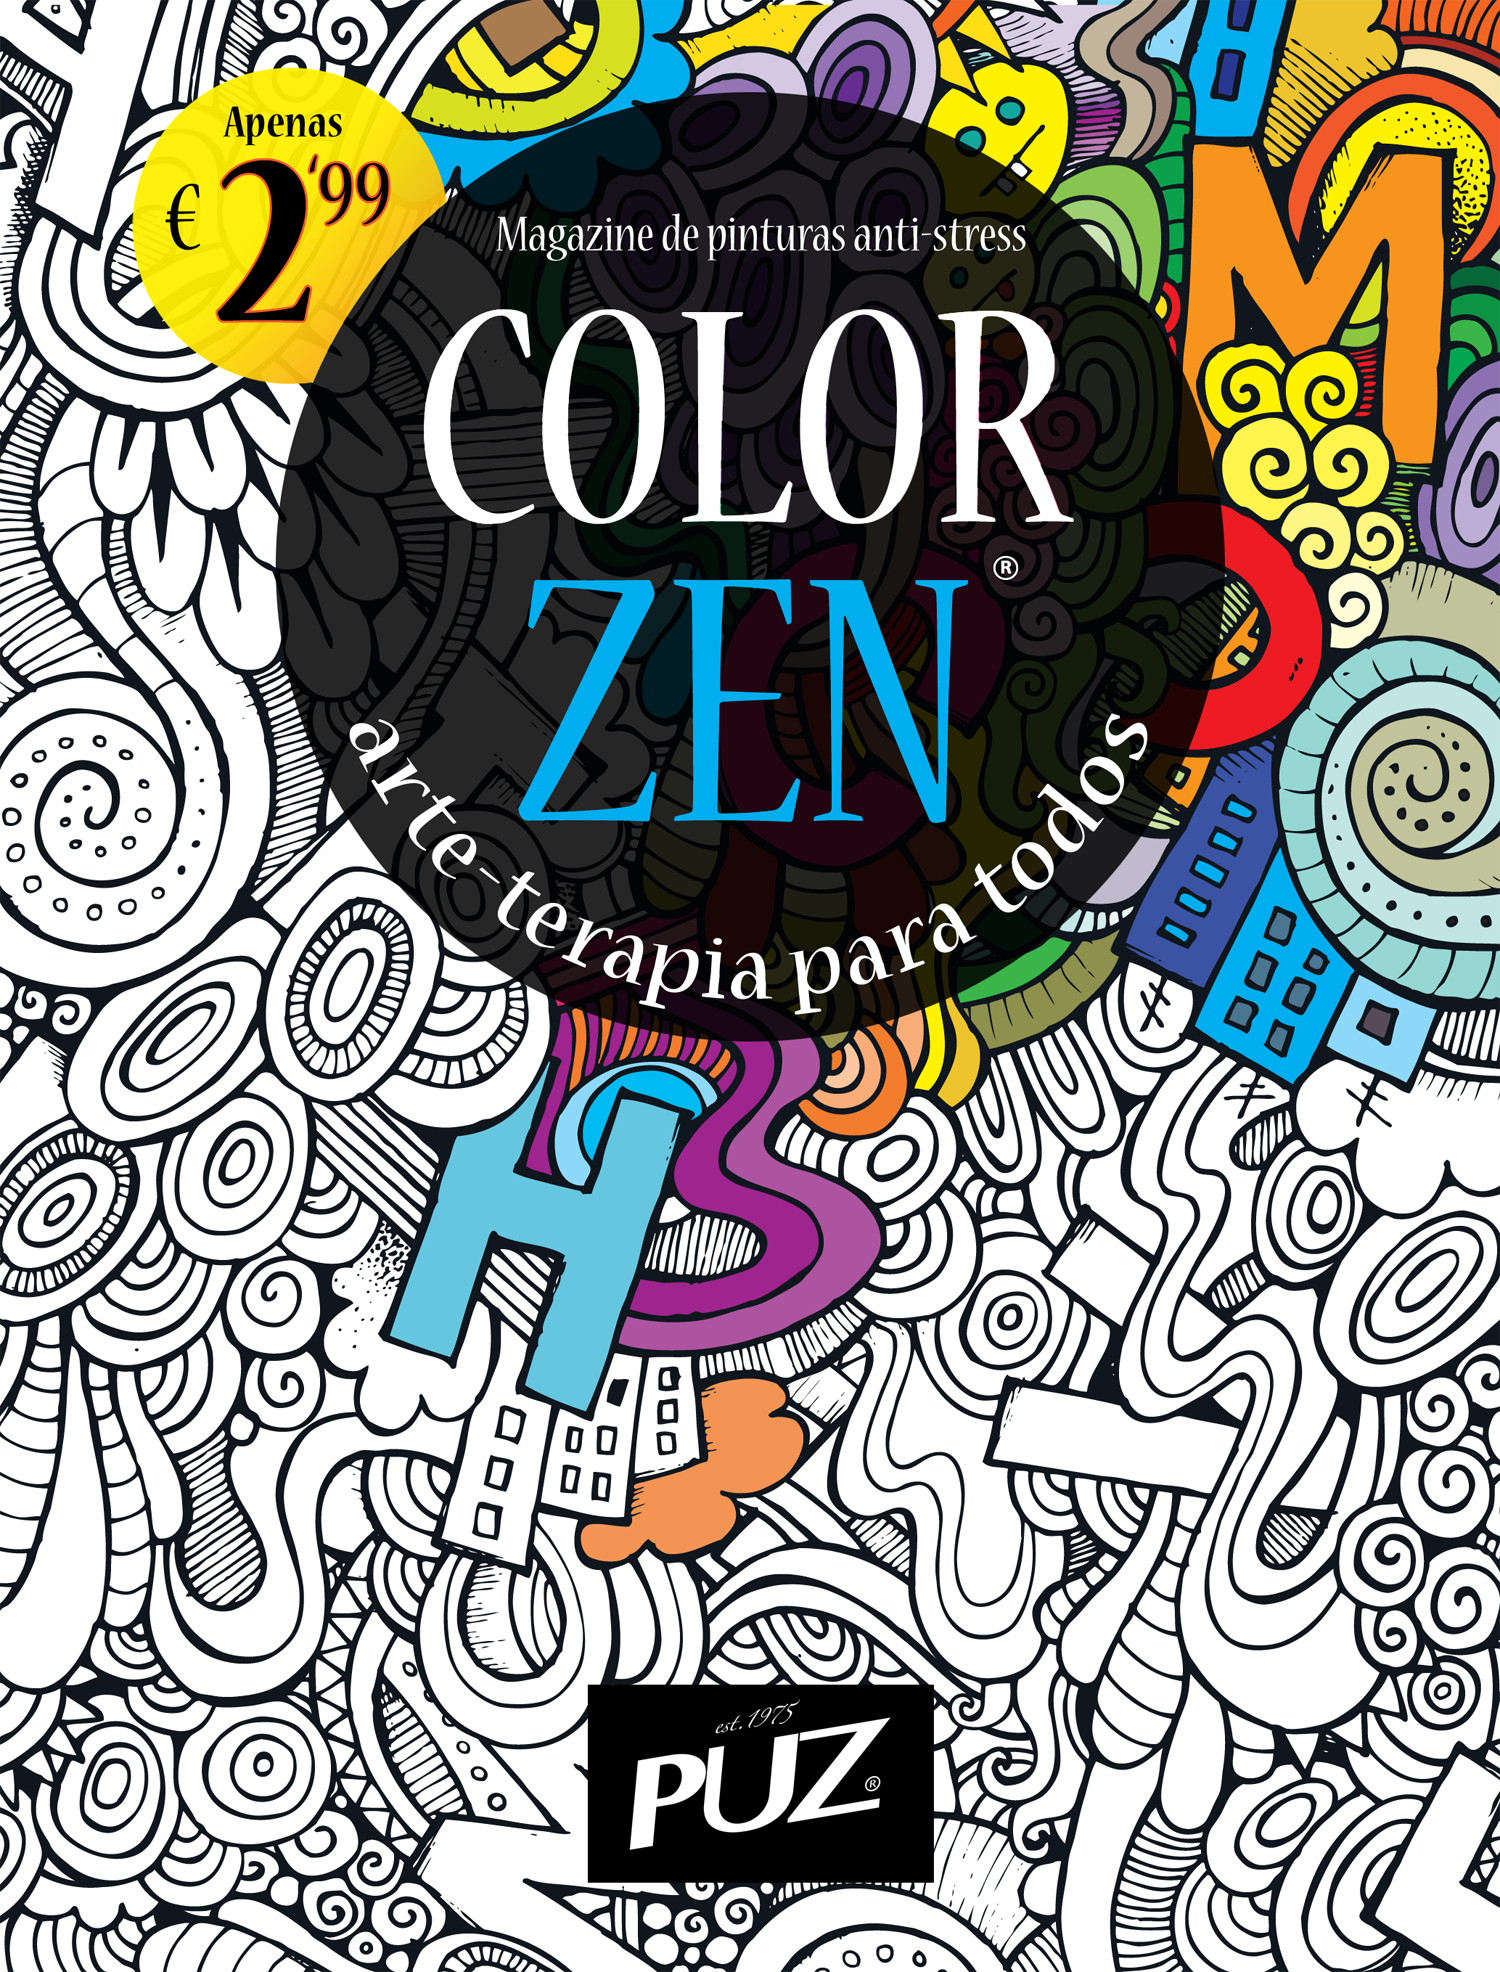 Color zen magazine - Karleigh Sue S Coloring Book By Cheri Lyn Shull Http Www Amazon Com Dp 1519147848 Ref Cm_sw_r_pi_dp_gy3zwb0d6at7q Coloring Pages Pinterest Coloring